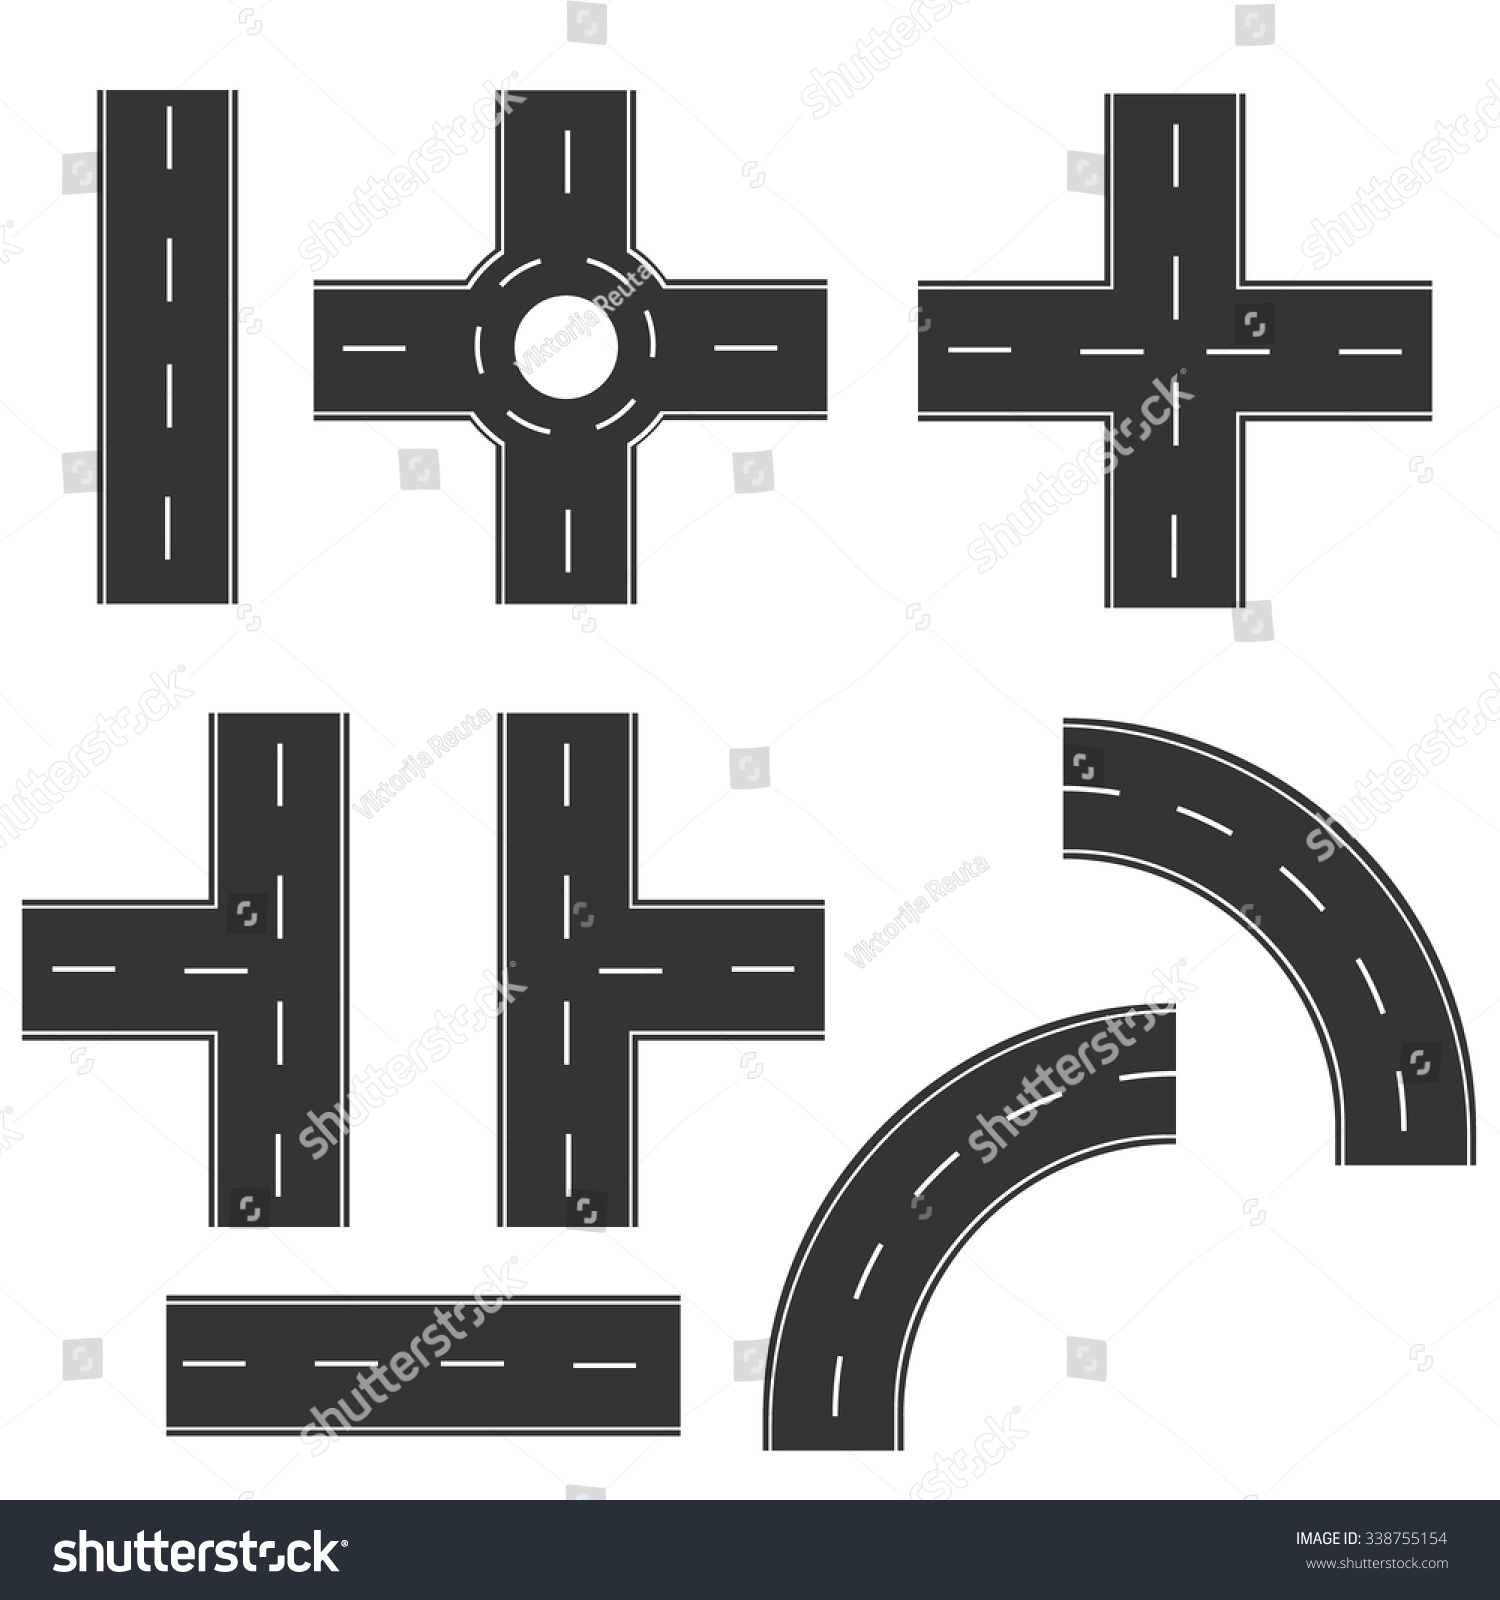 Road elements create your own road stock vector 338755154 road elements create your own road map vector illustration collection of connectable highway elements biocorpaavc Gallery